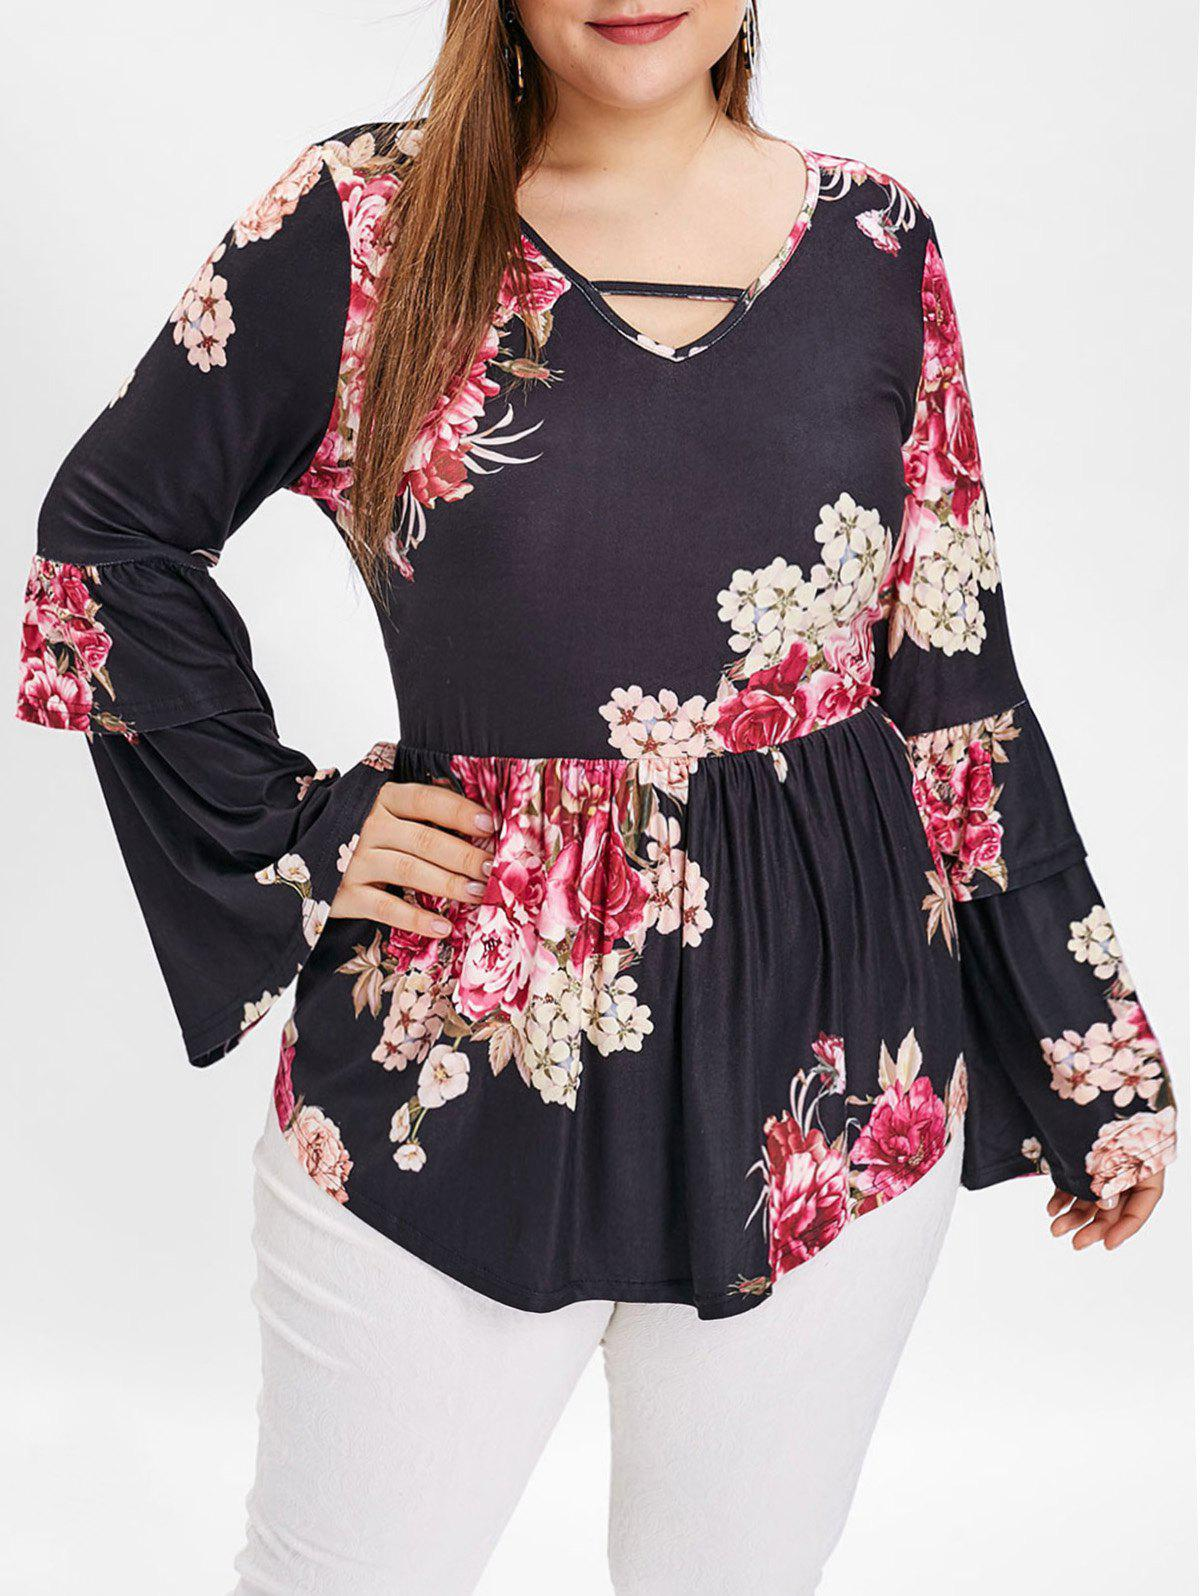 Plus Size Layered Flare Sleeve Floral Print T-shirt - BLACK 5X